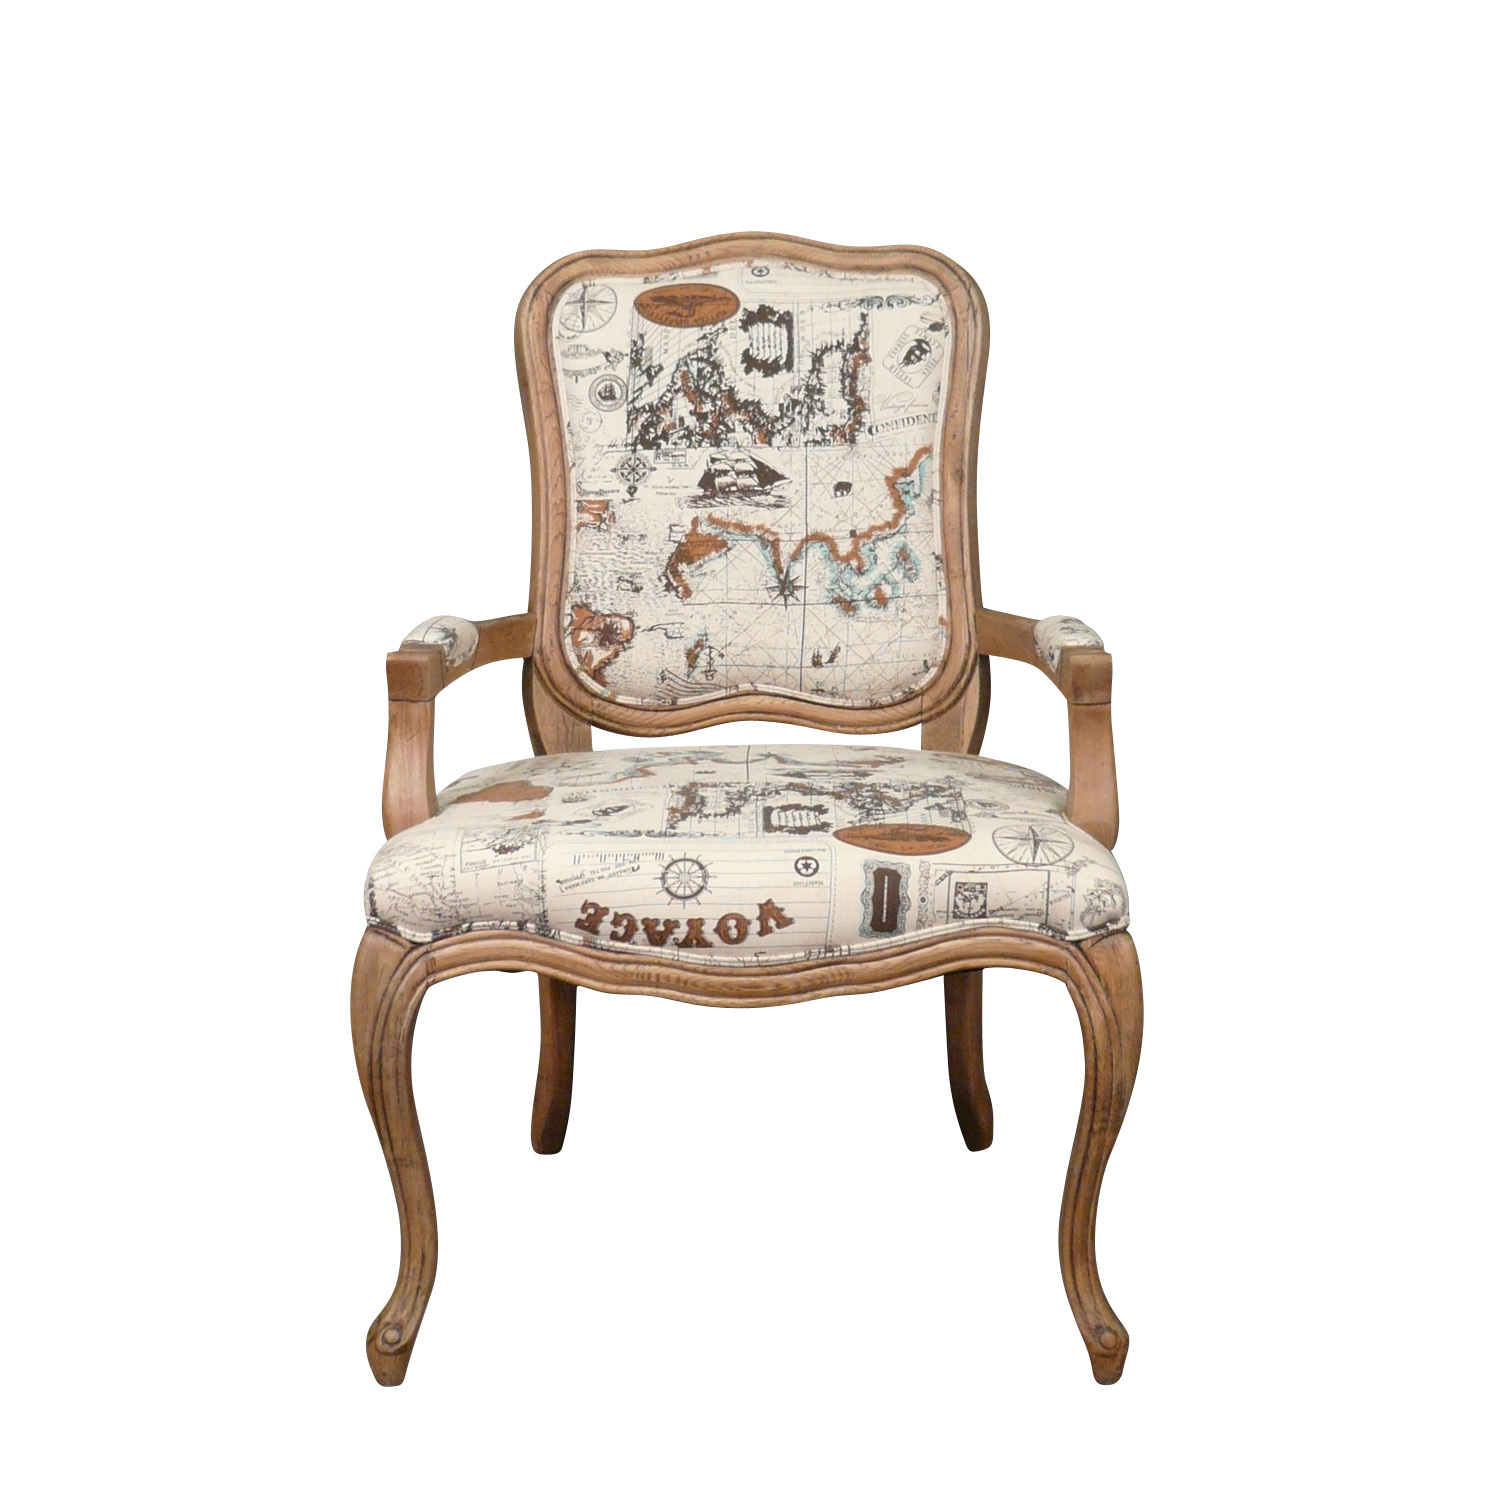 Louis xv armchair photo gallery louis xv furniture for Armchair furniture